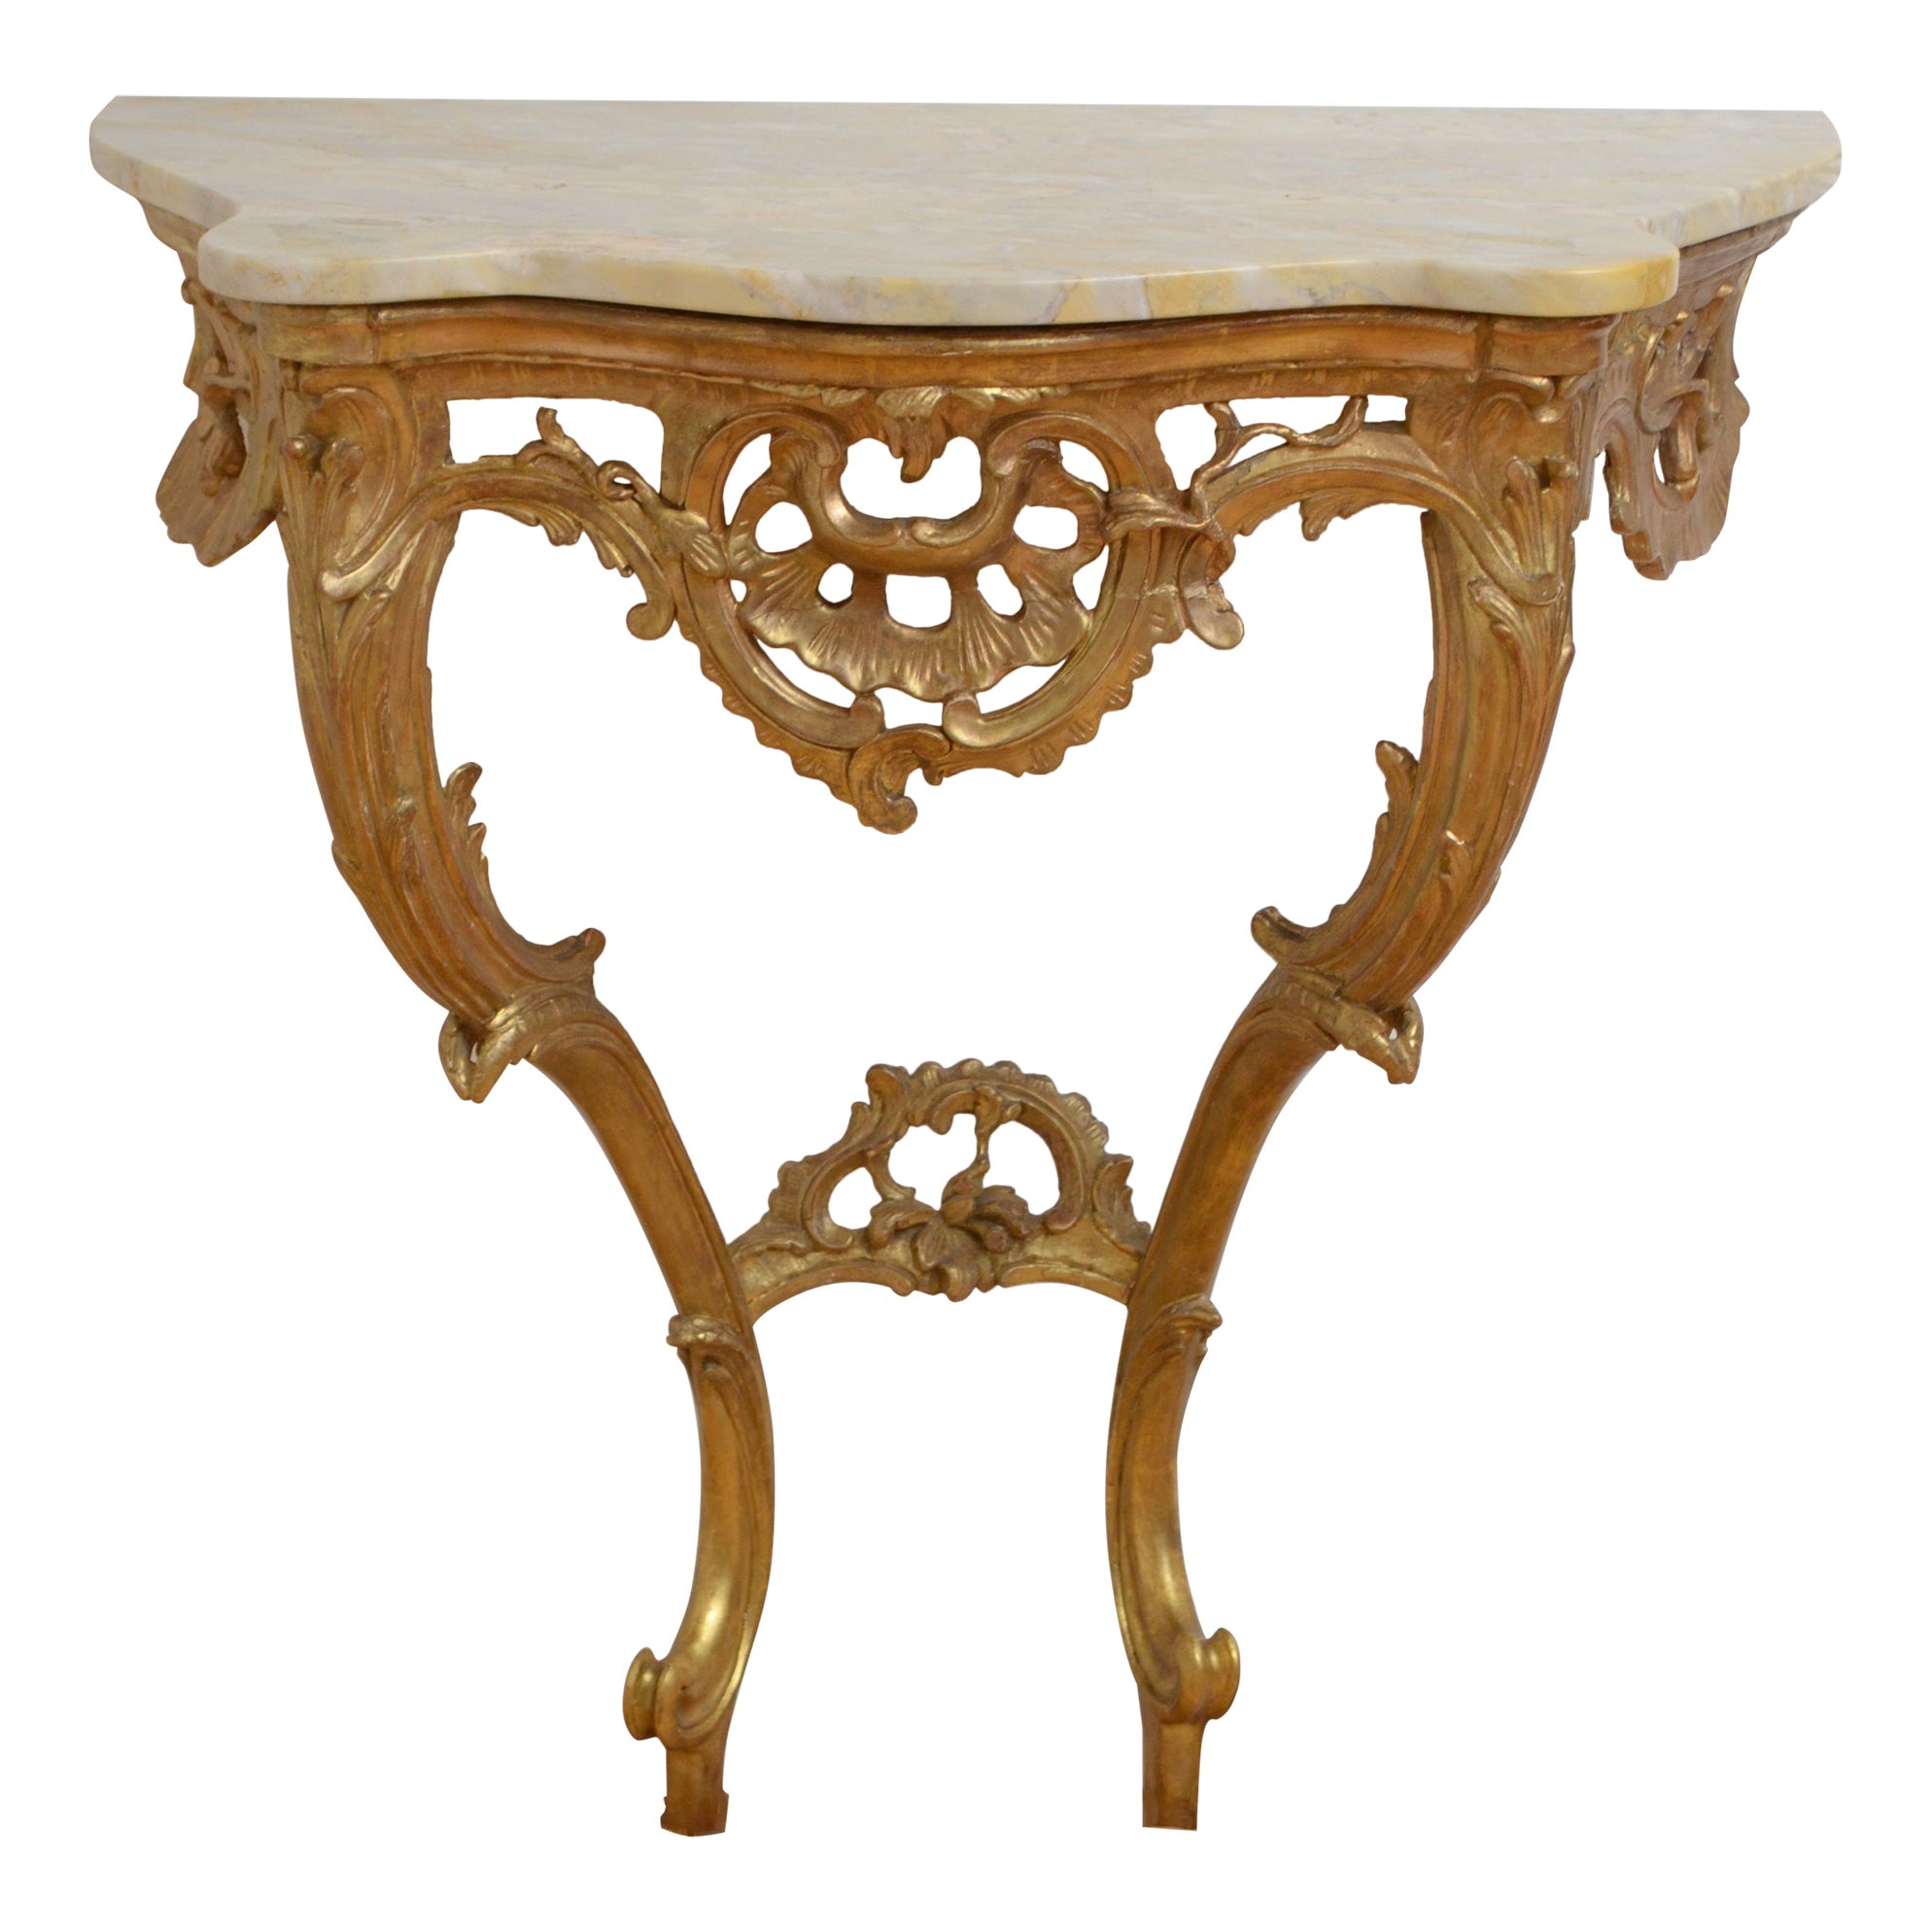 Early 19th Century Giltwood Console Table Hall Table